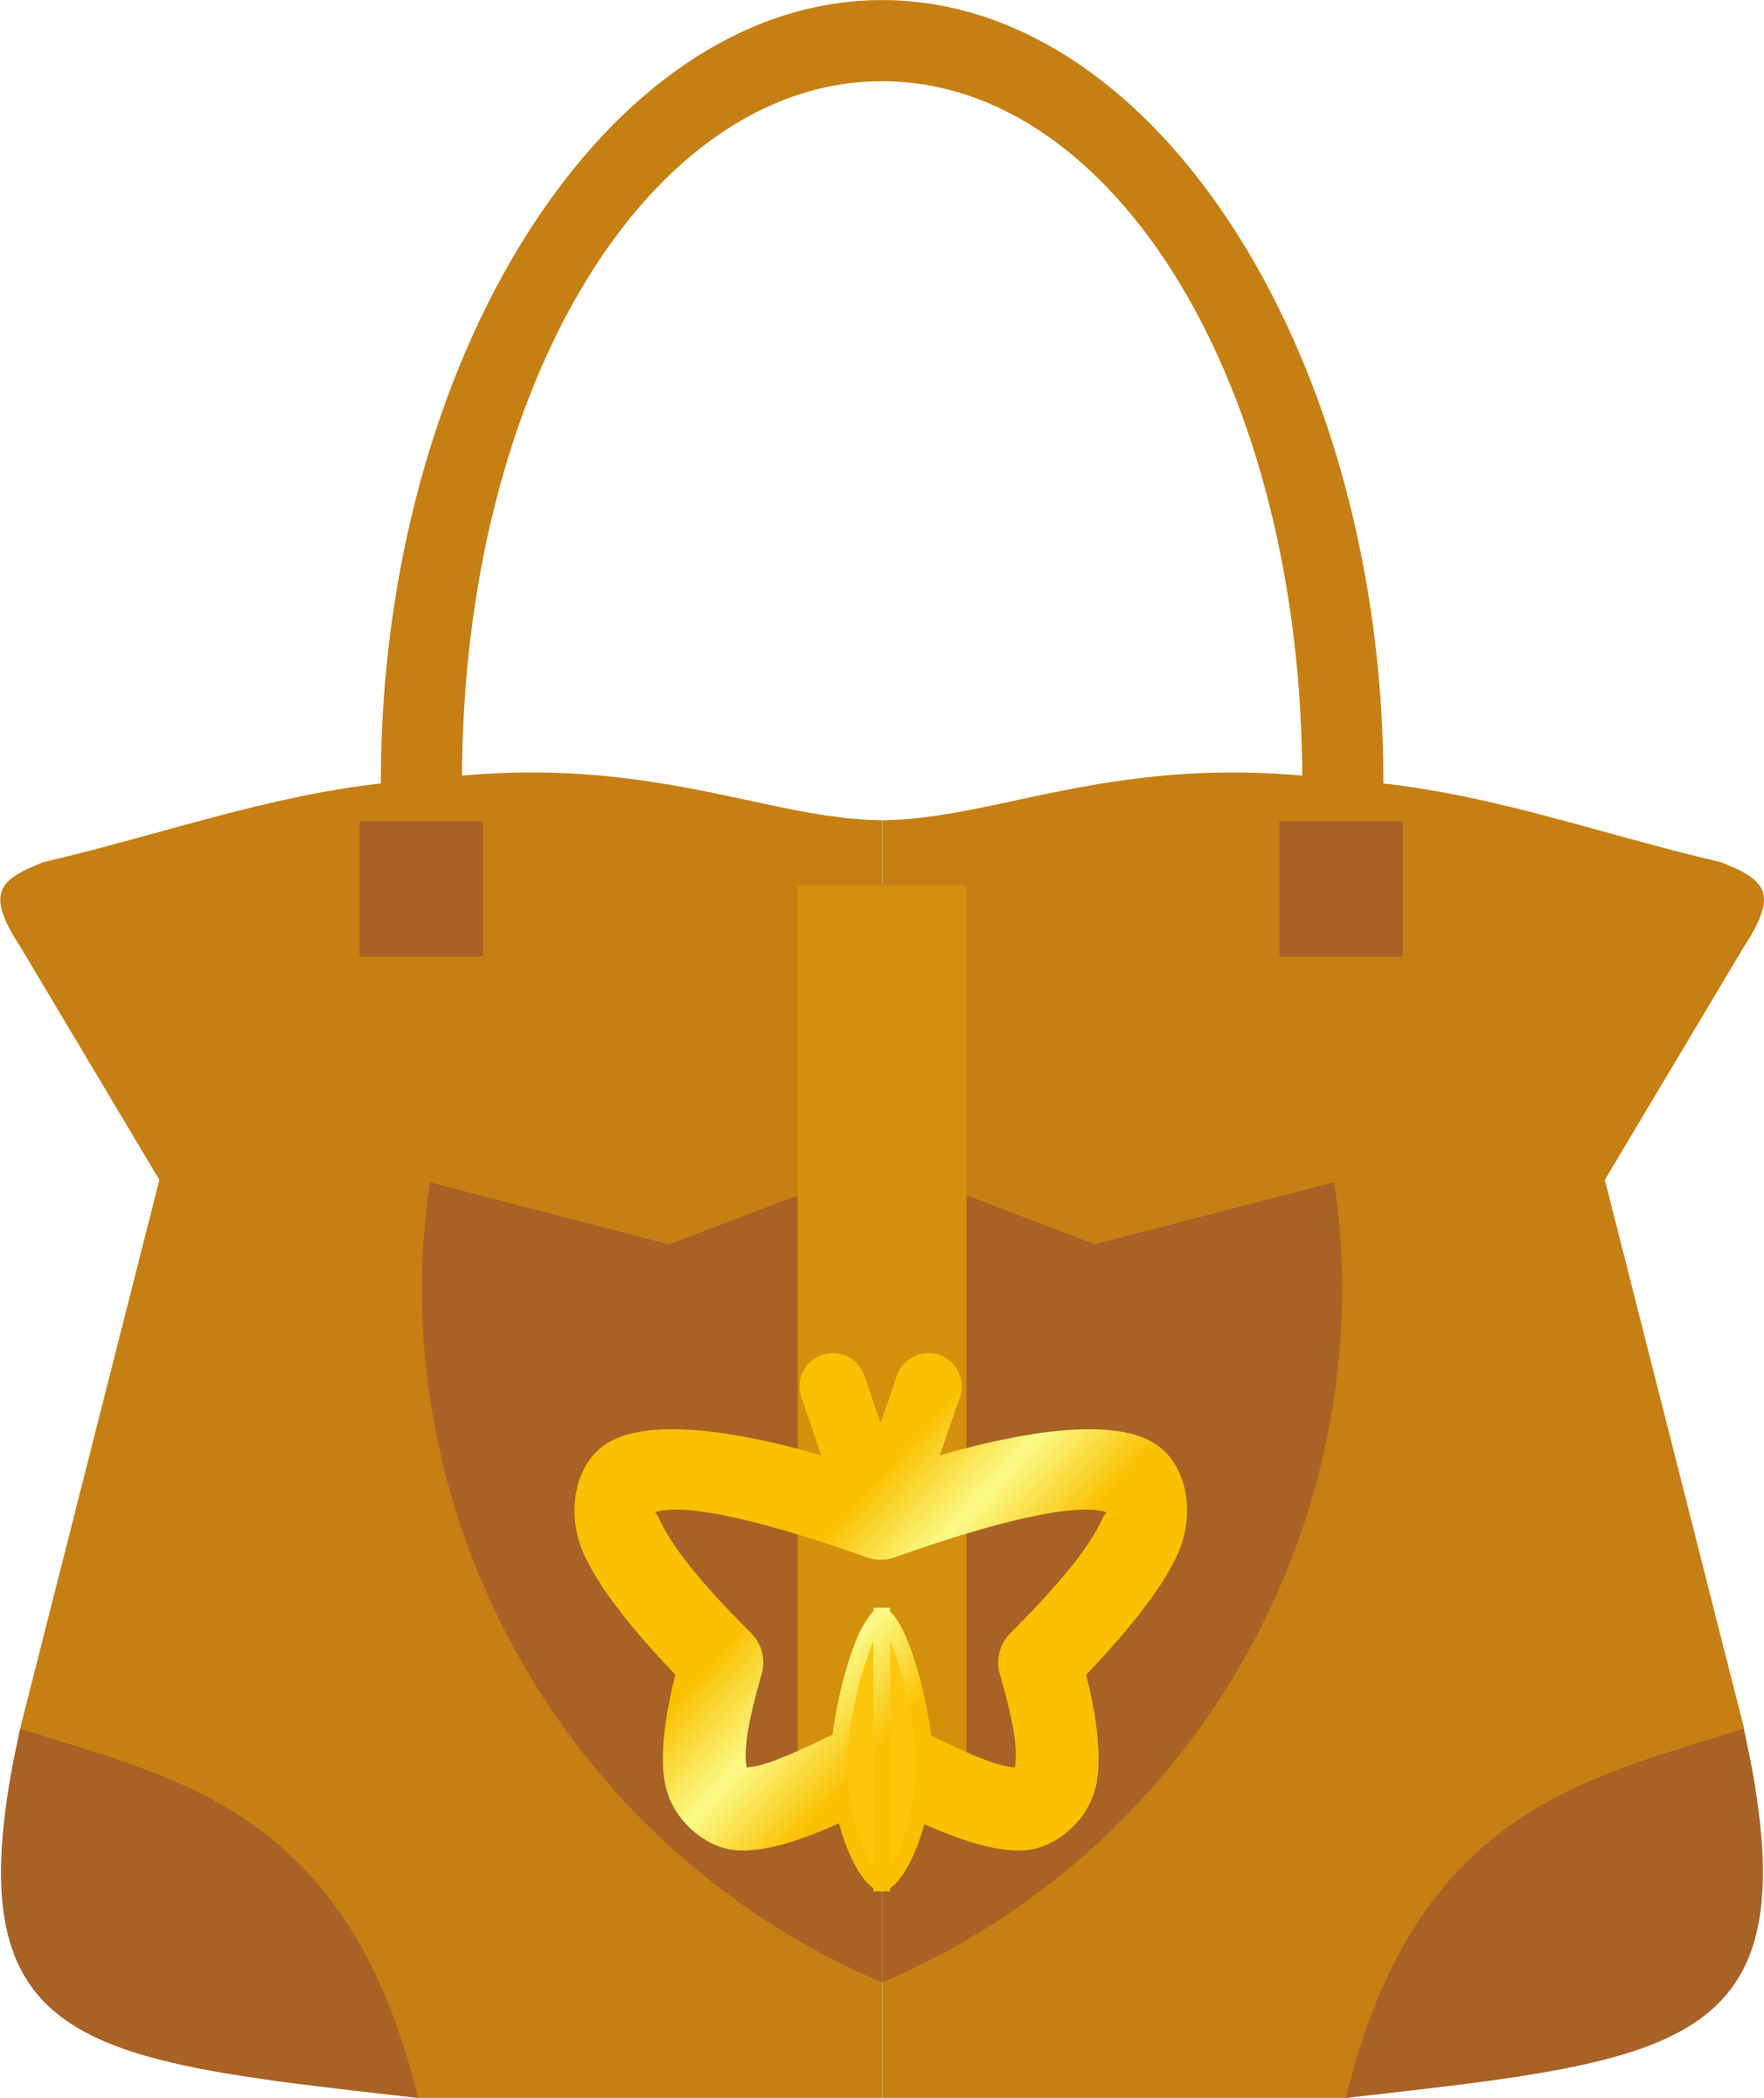 Leather handbag (purse) - Symmetrical by SunKing2